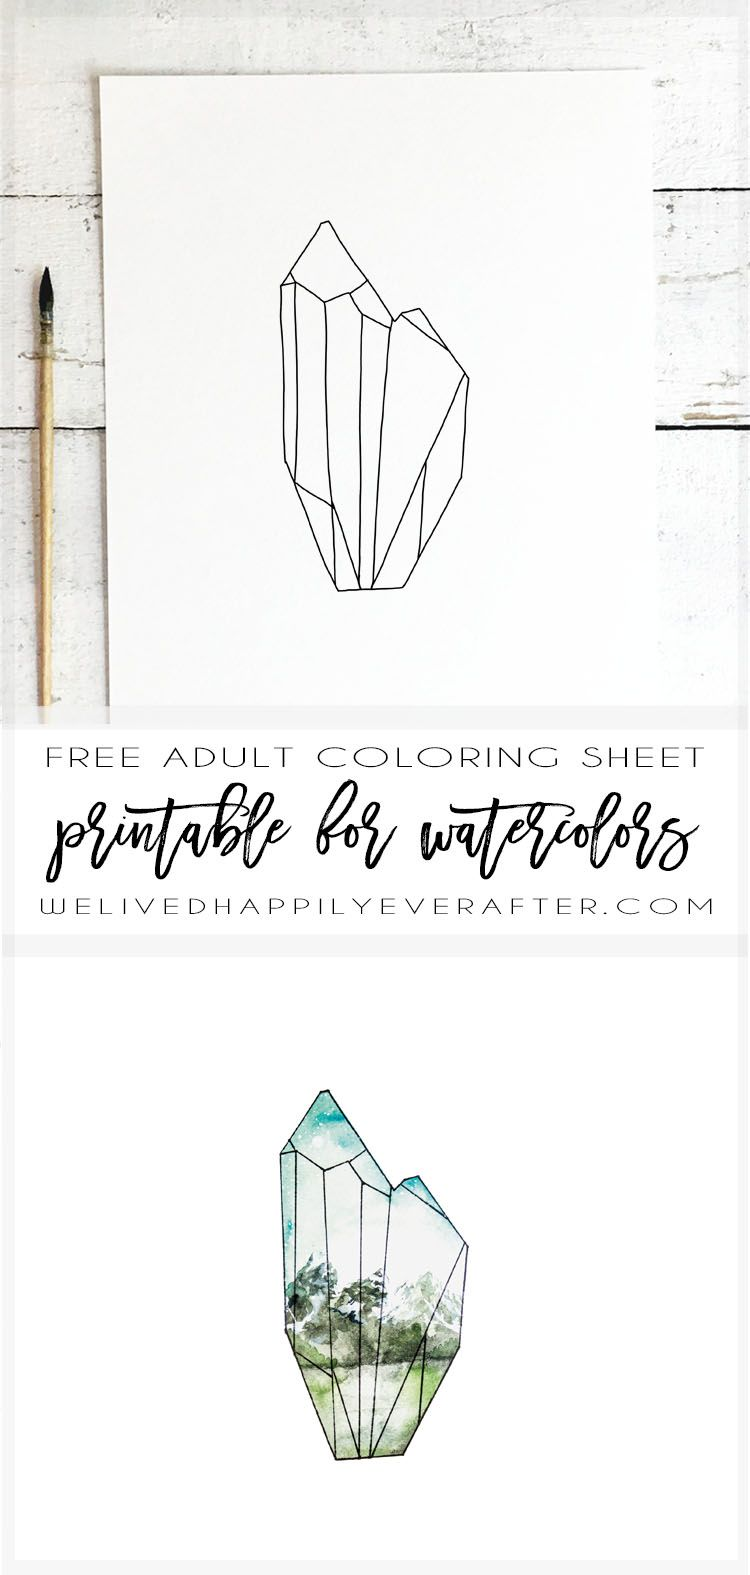 Fun Geometric Crystal Winter Snowy Mountain Free Coloring Sheet Printable Watercolor Coloring Sheet For Kids Teens Adults We Lived Happily Ever After Coloring Sheets For Kids Coloring Sheets Free